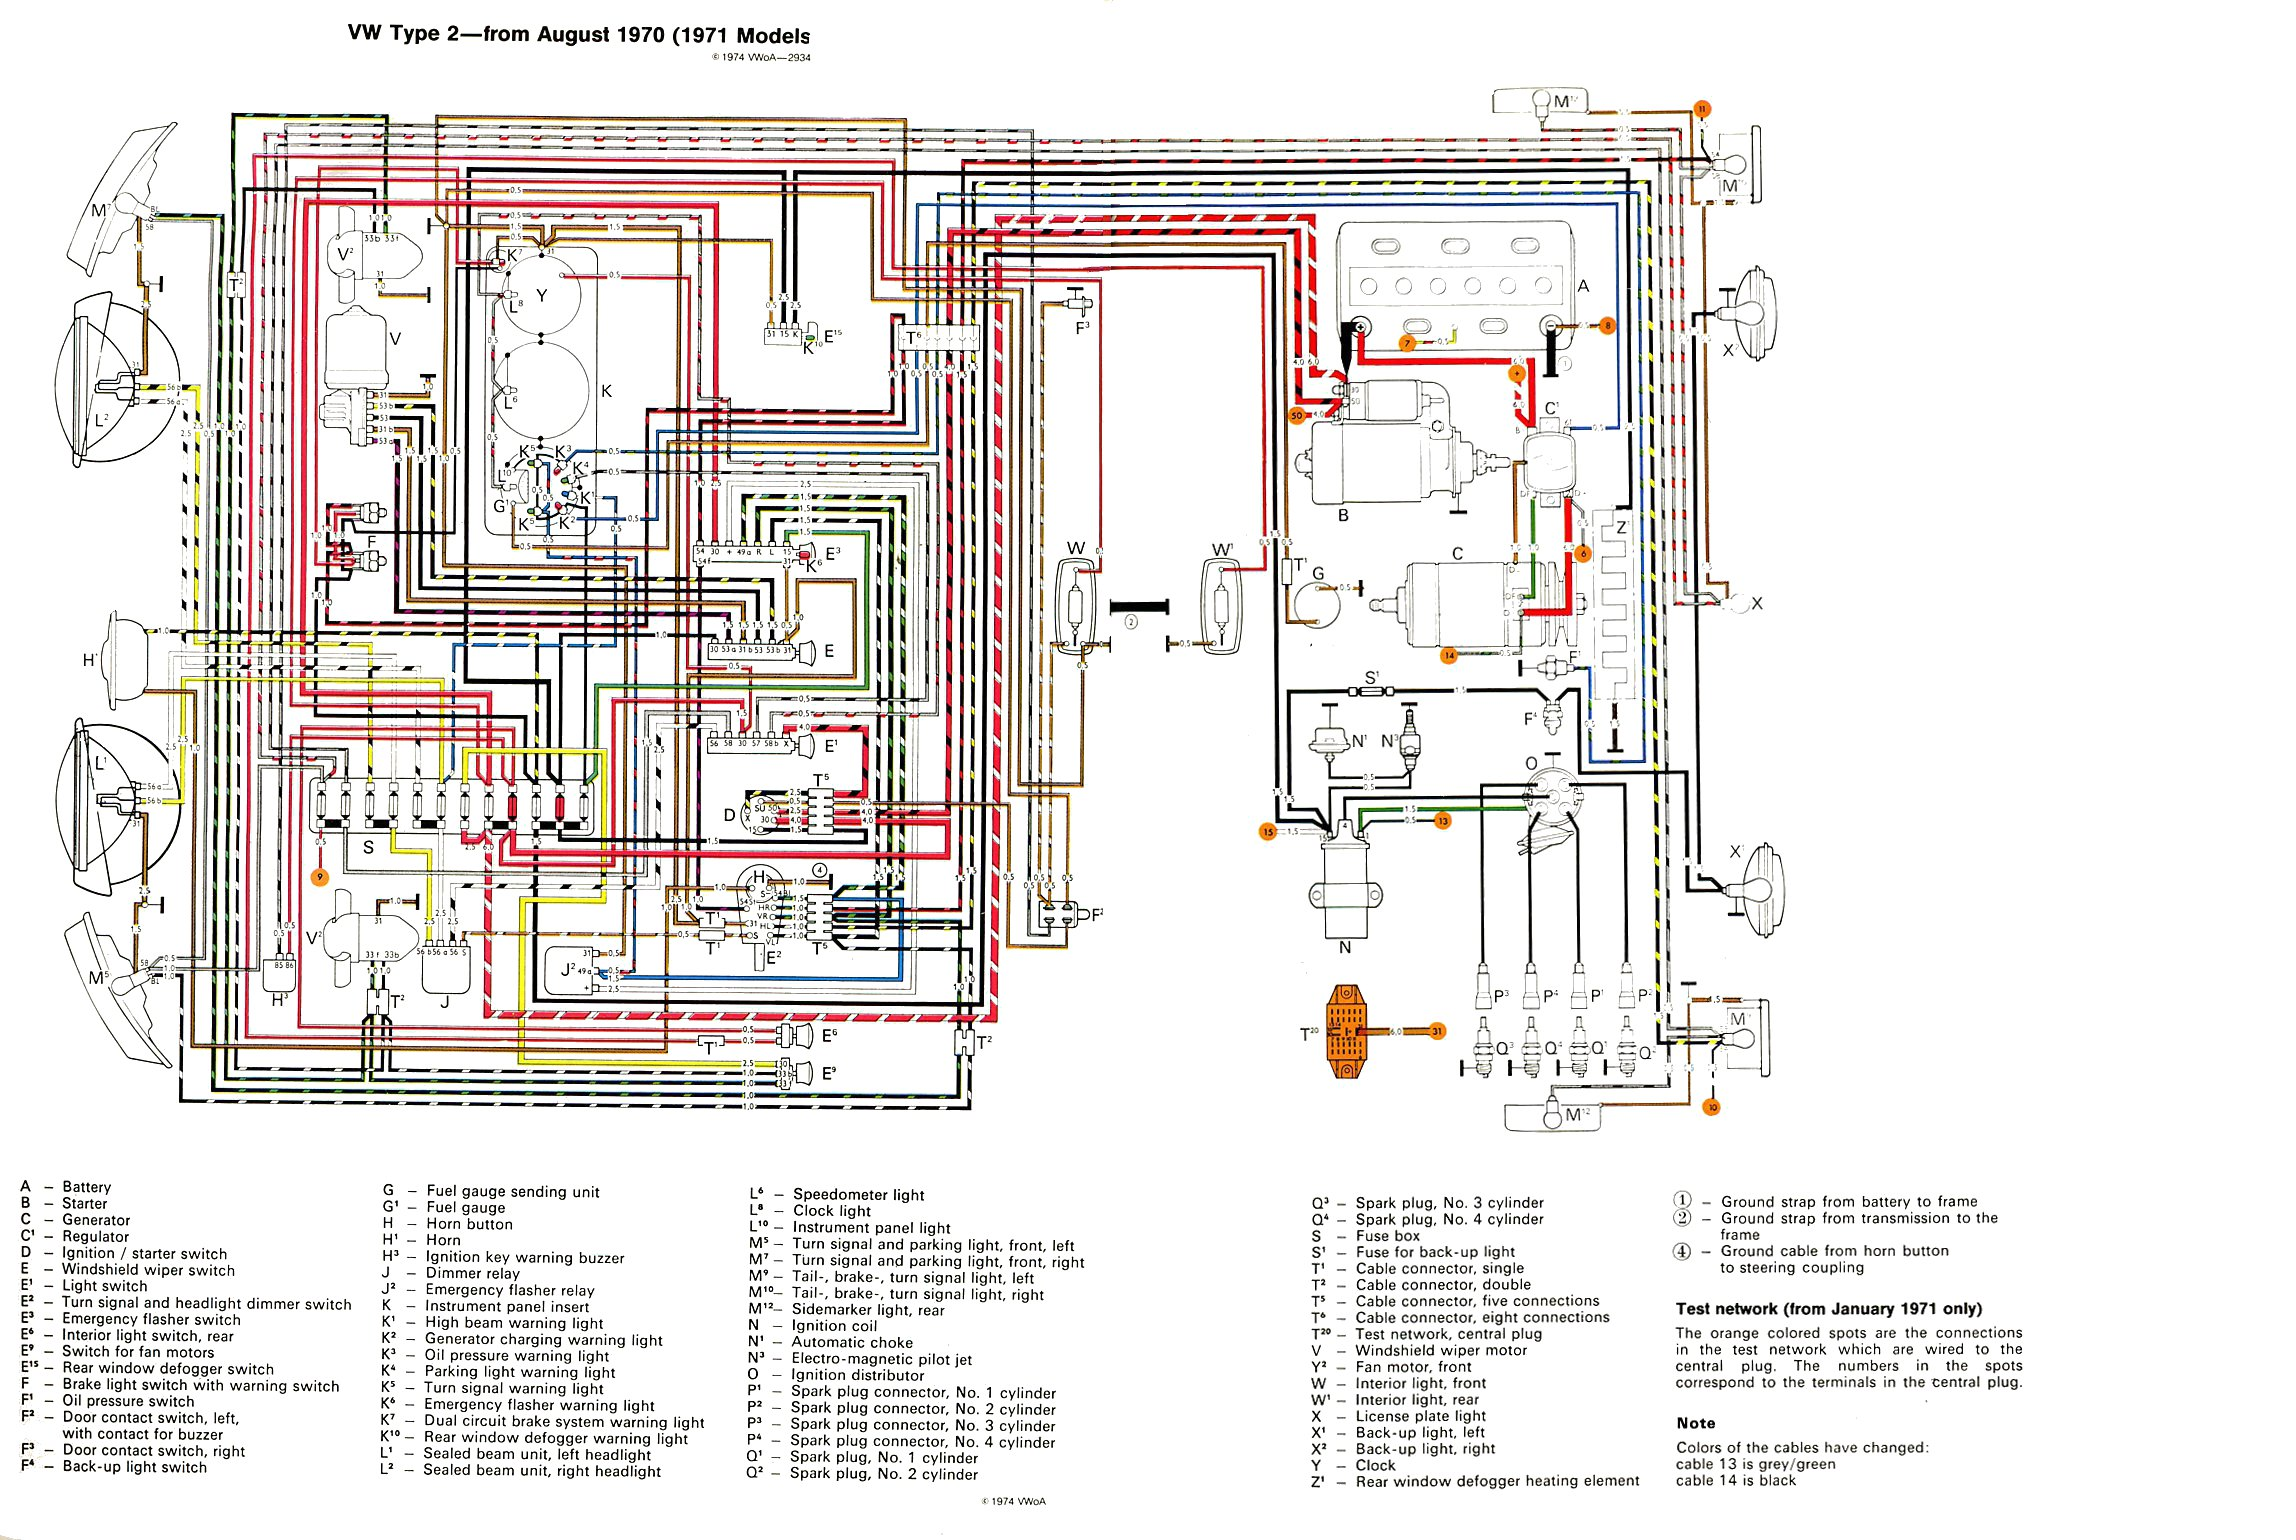 Headlight Wiring Diagram Pdf Schematics Hiniker Snow Plow Thesamba Com Type 2 Diagrams Cheat Sheet